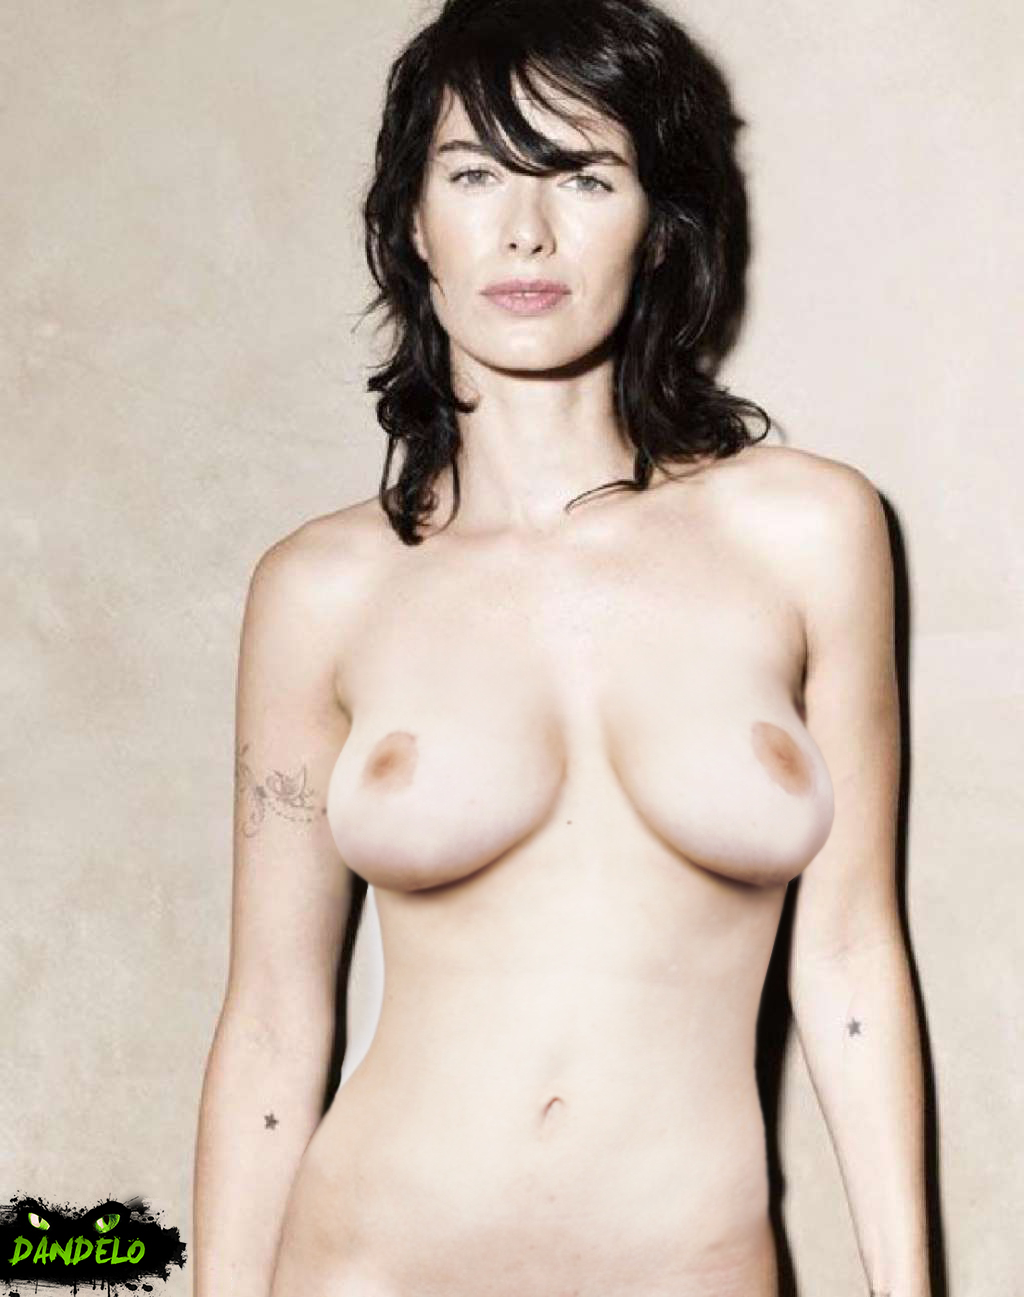 Game of thrones fans complain about lena headey's use of a nude body double